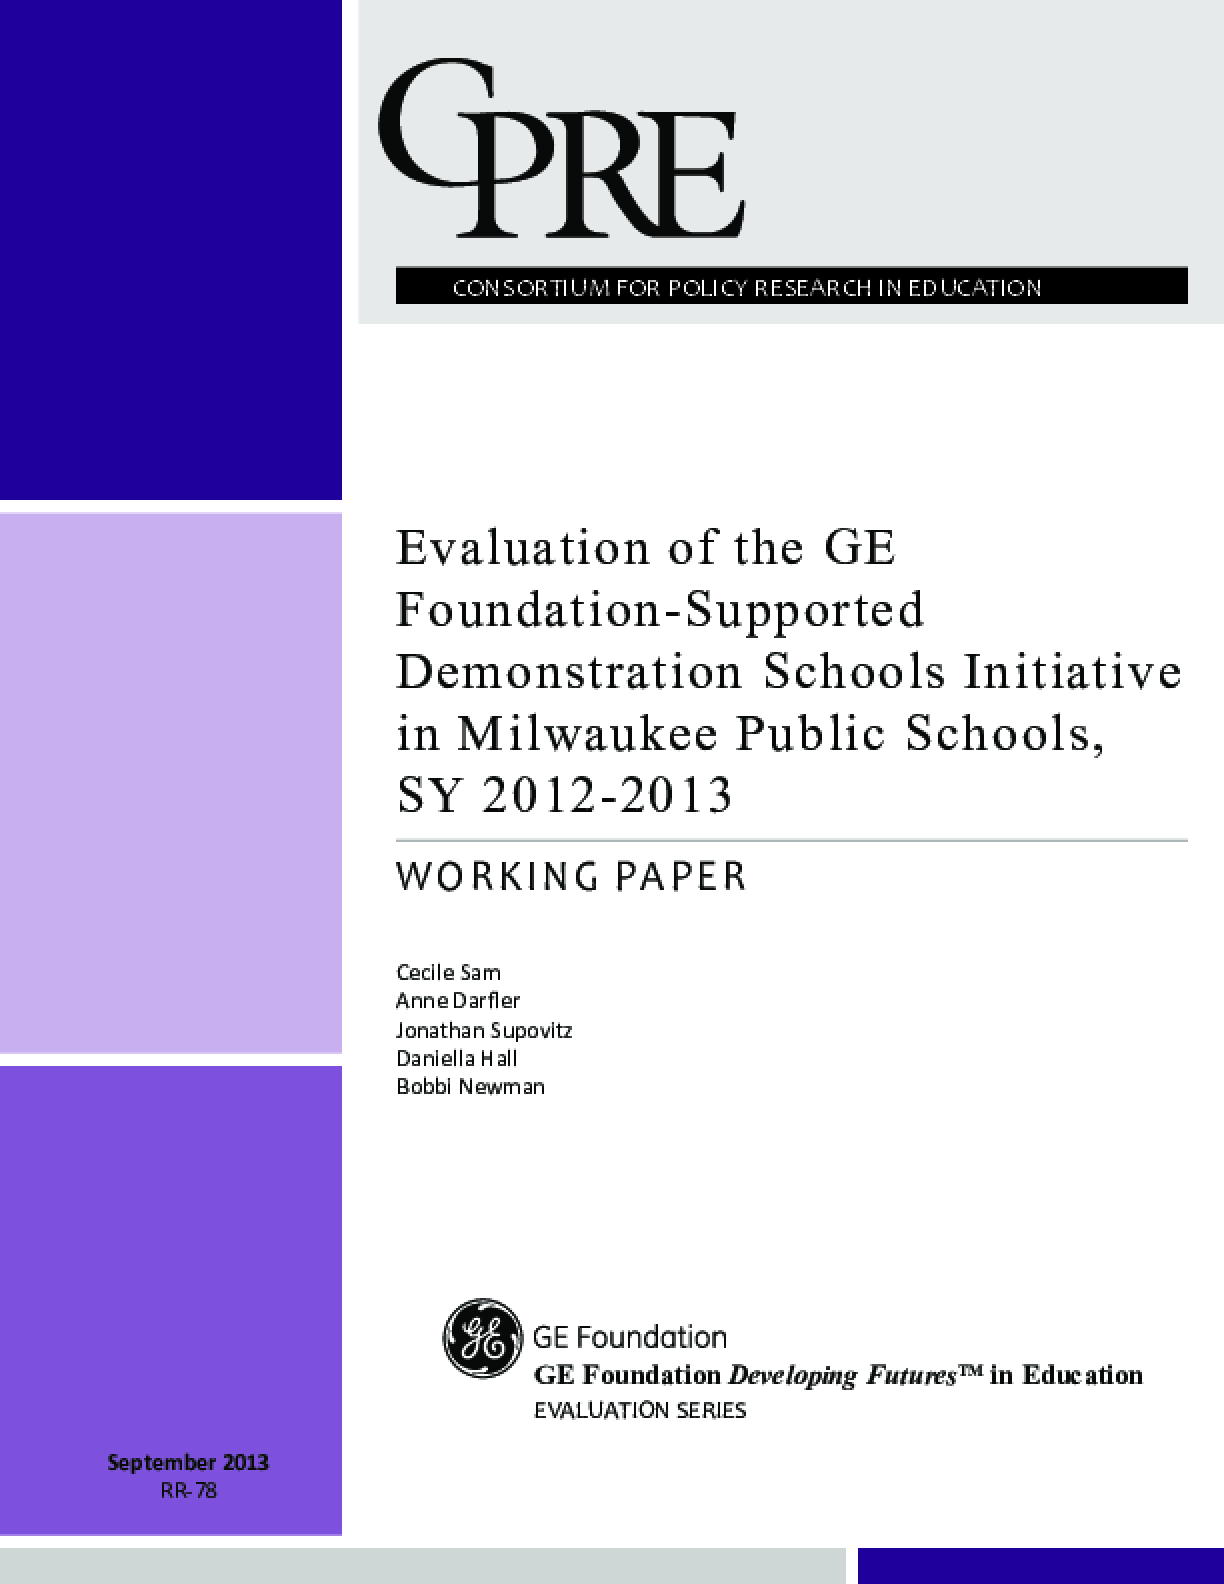 Evaluation of the GE Foundation-Supported Demonstration Schools Initiative in Milwaukee Public Schools, SY 2012-2013